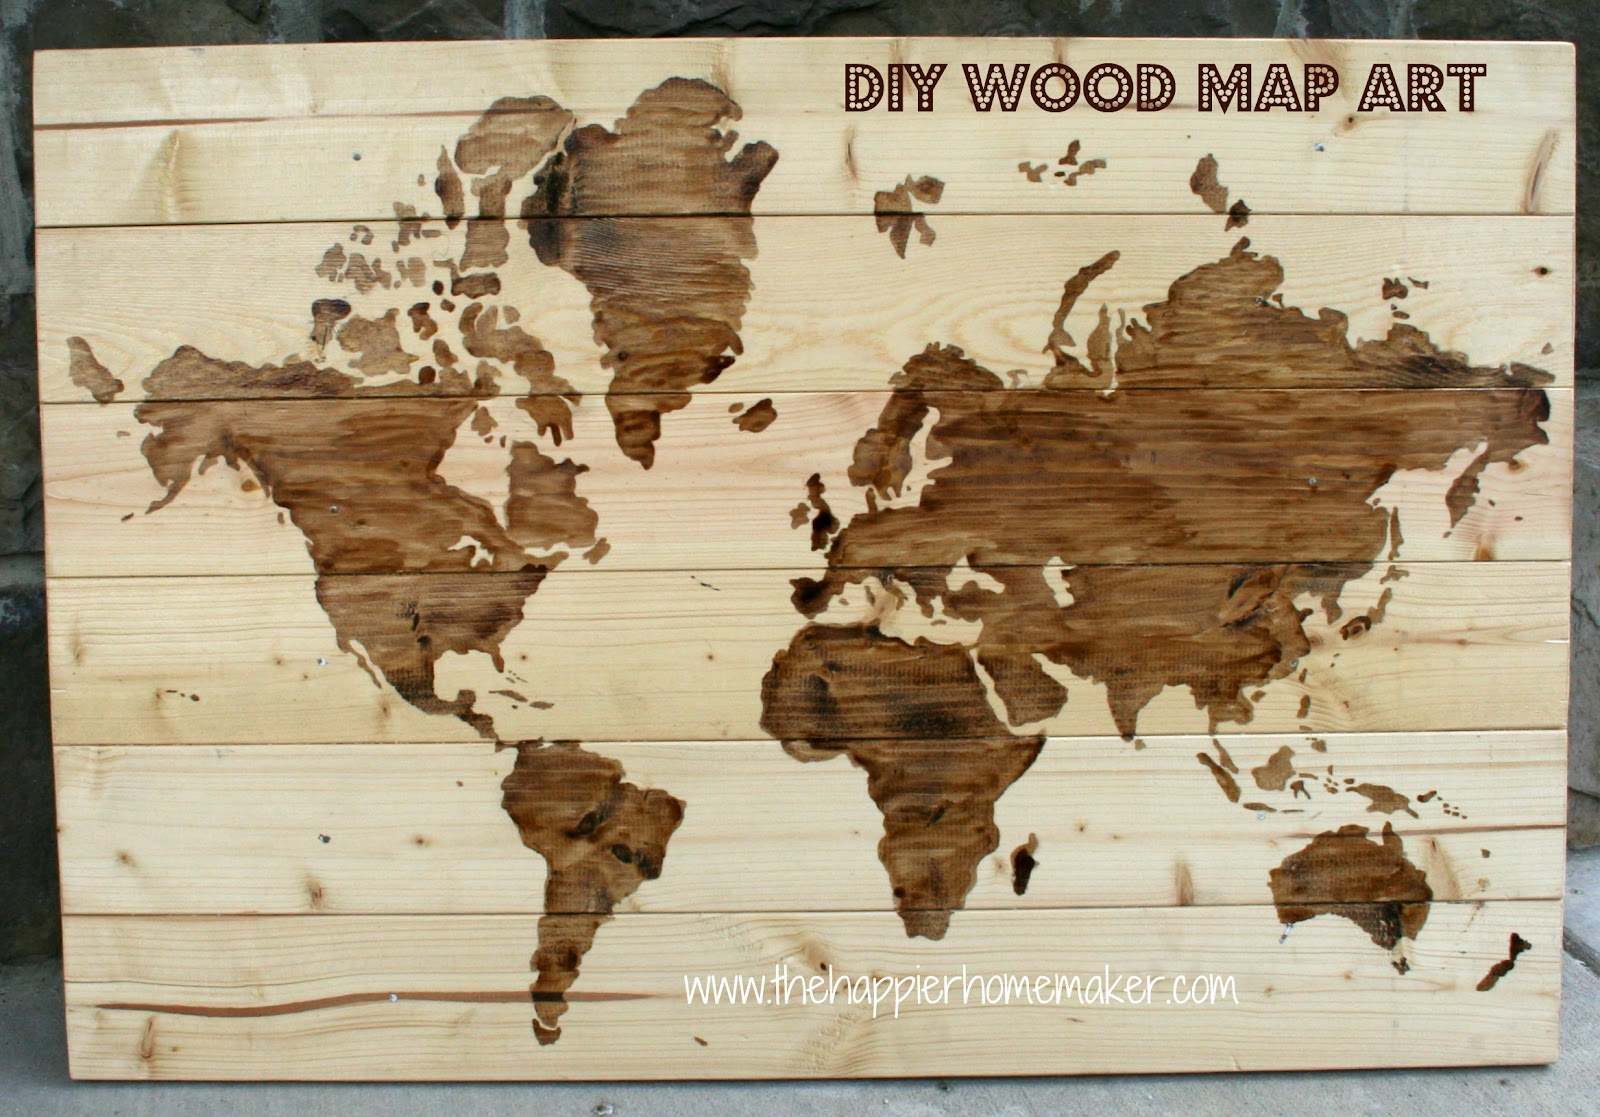 Diy wooden world map art the happier homemaker gumiabroncs Image collections